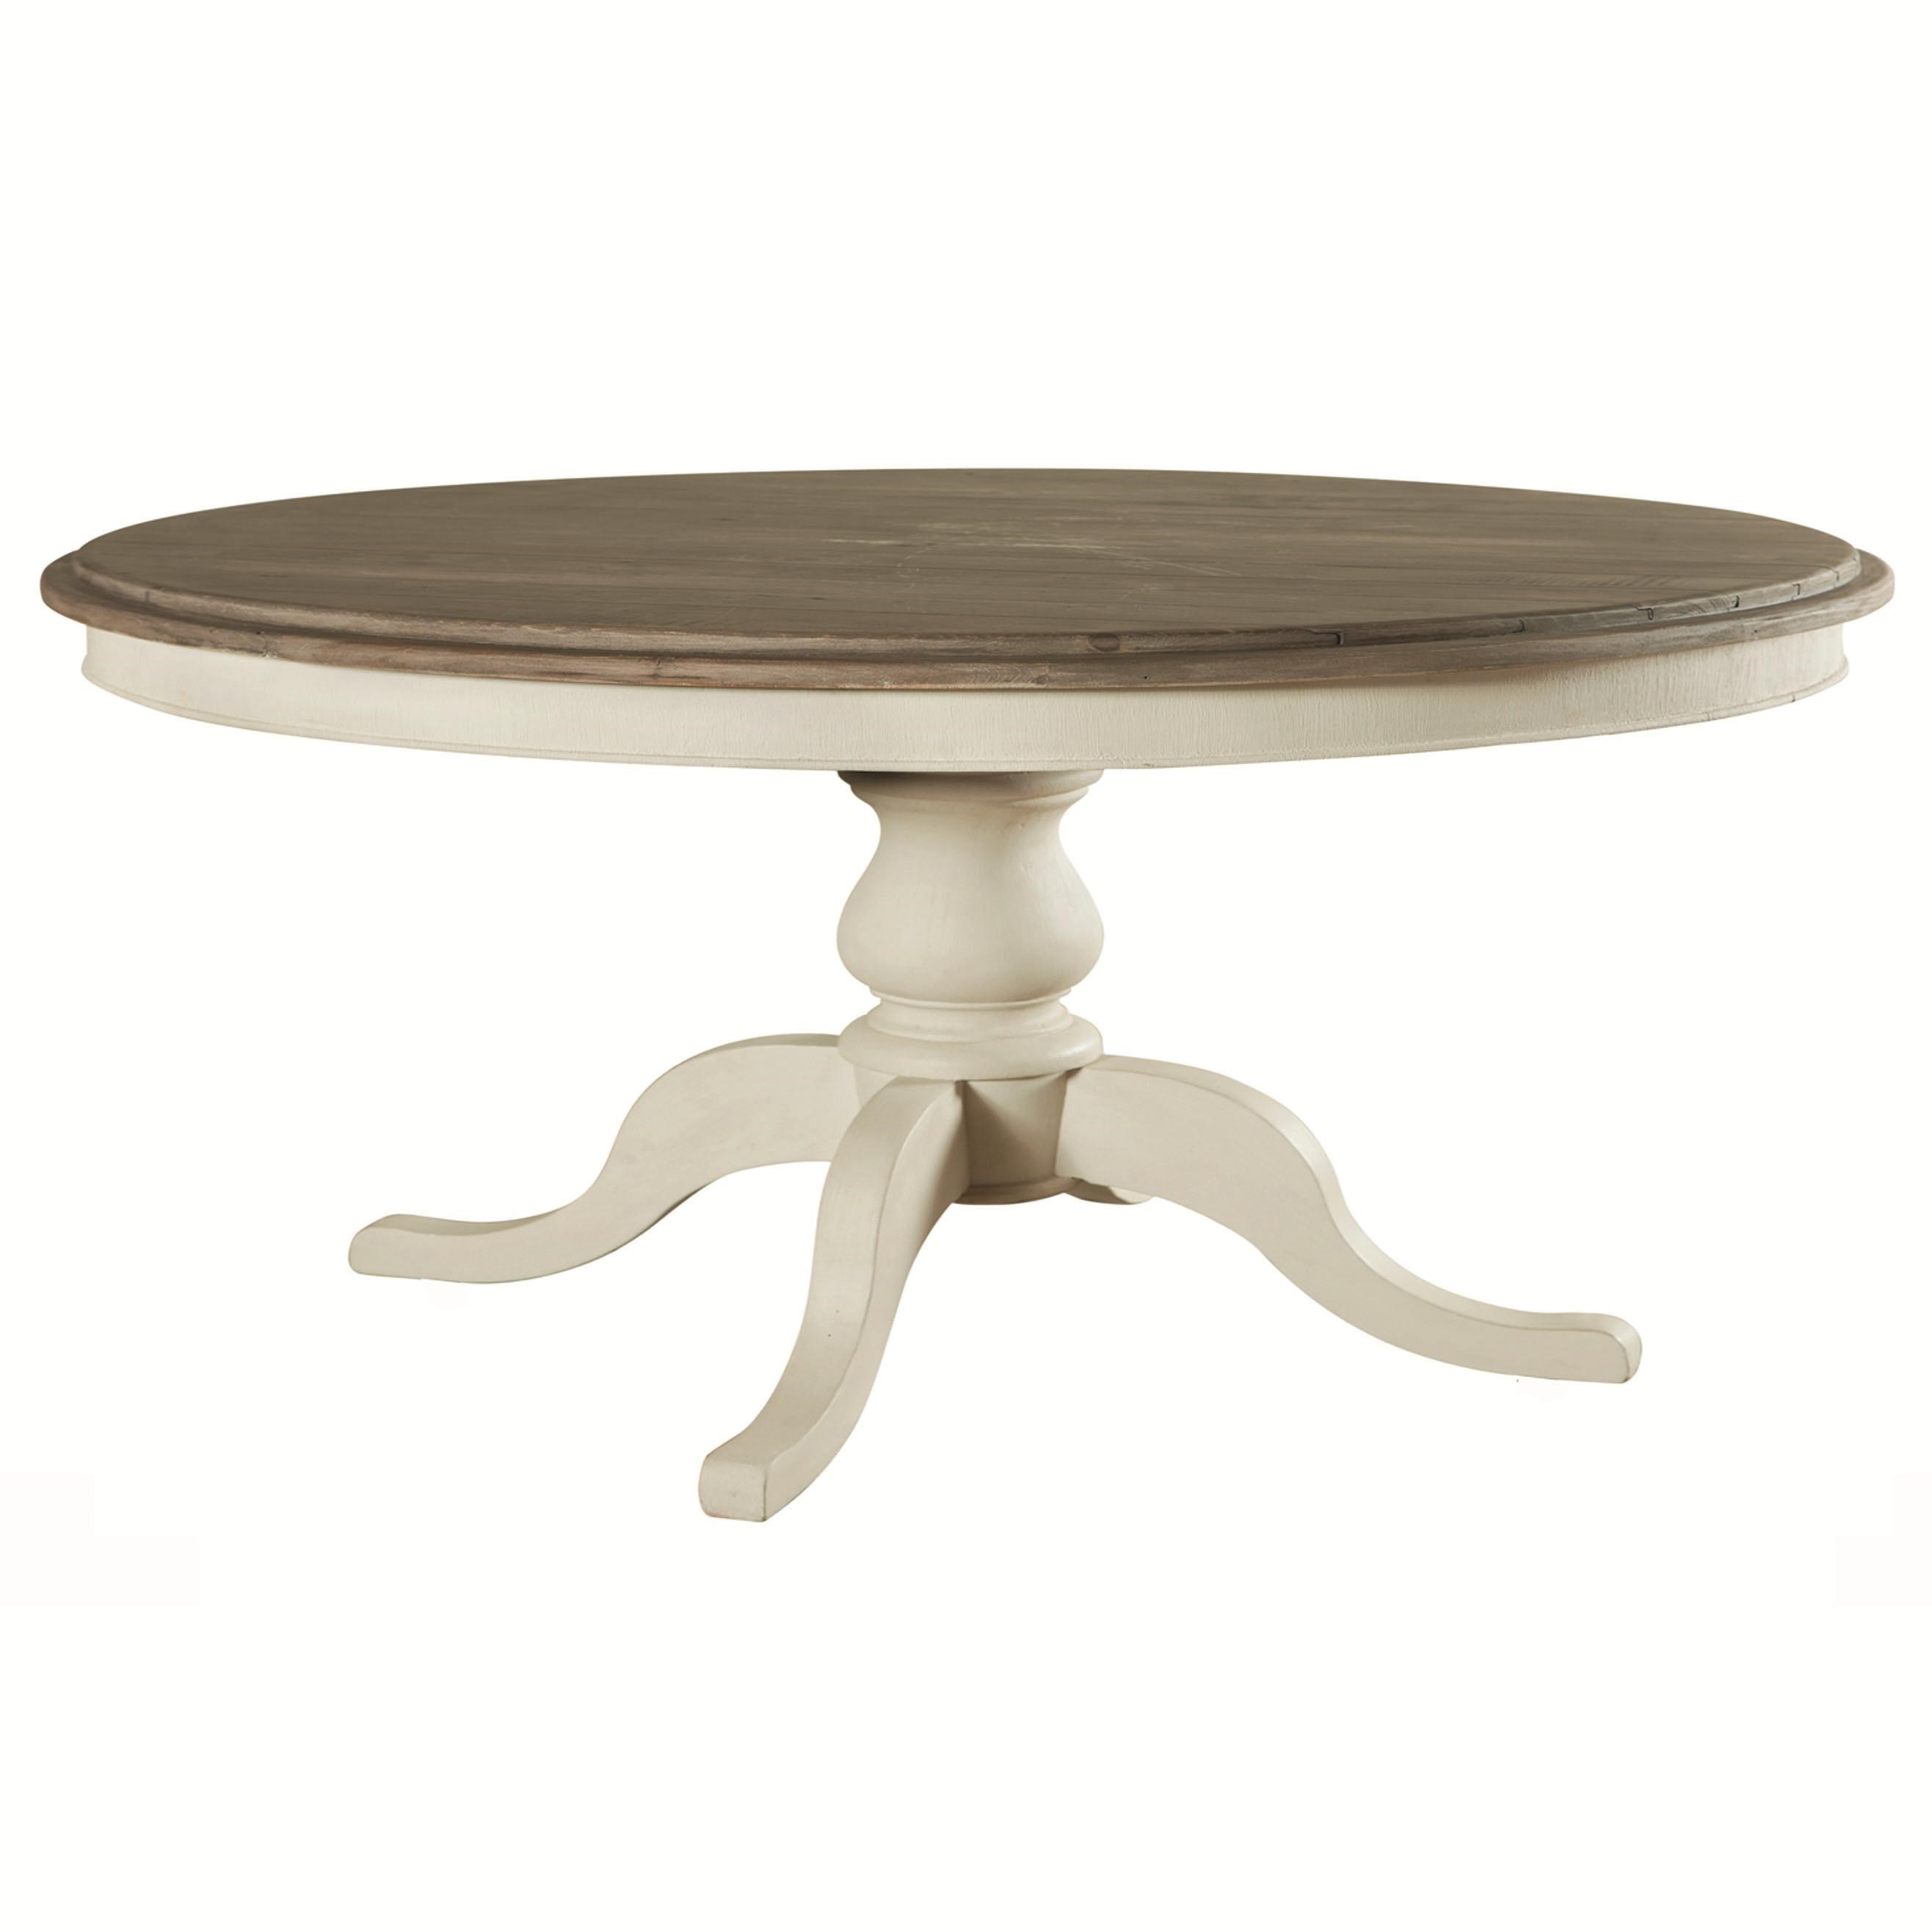 Genial Four Hands Cornwall Round Dining Pedestal Table. Cornwall Collection